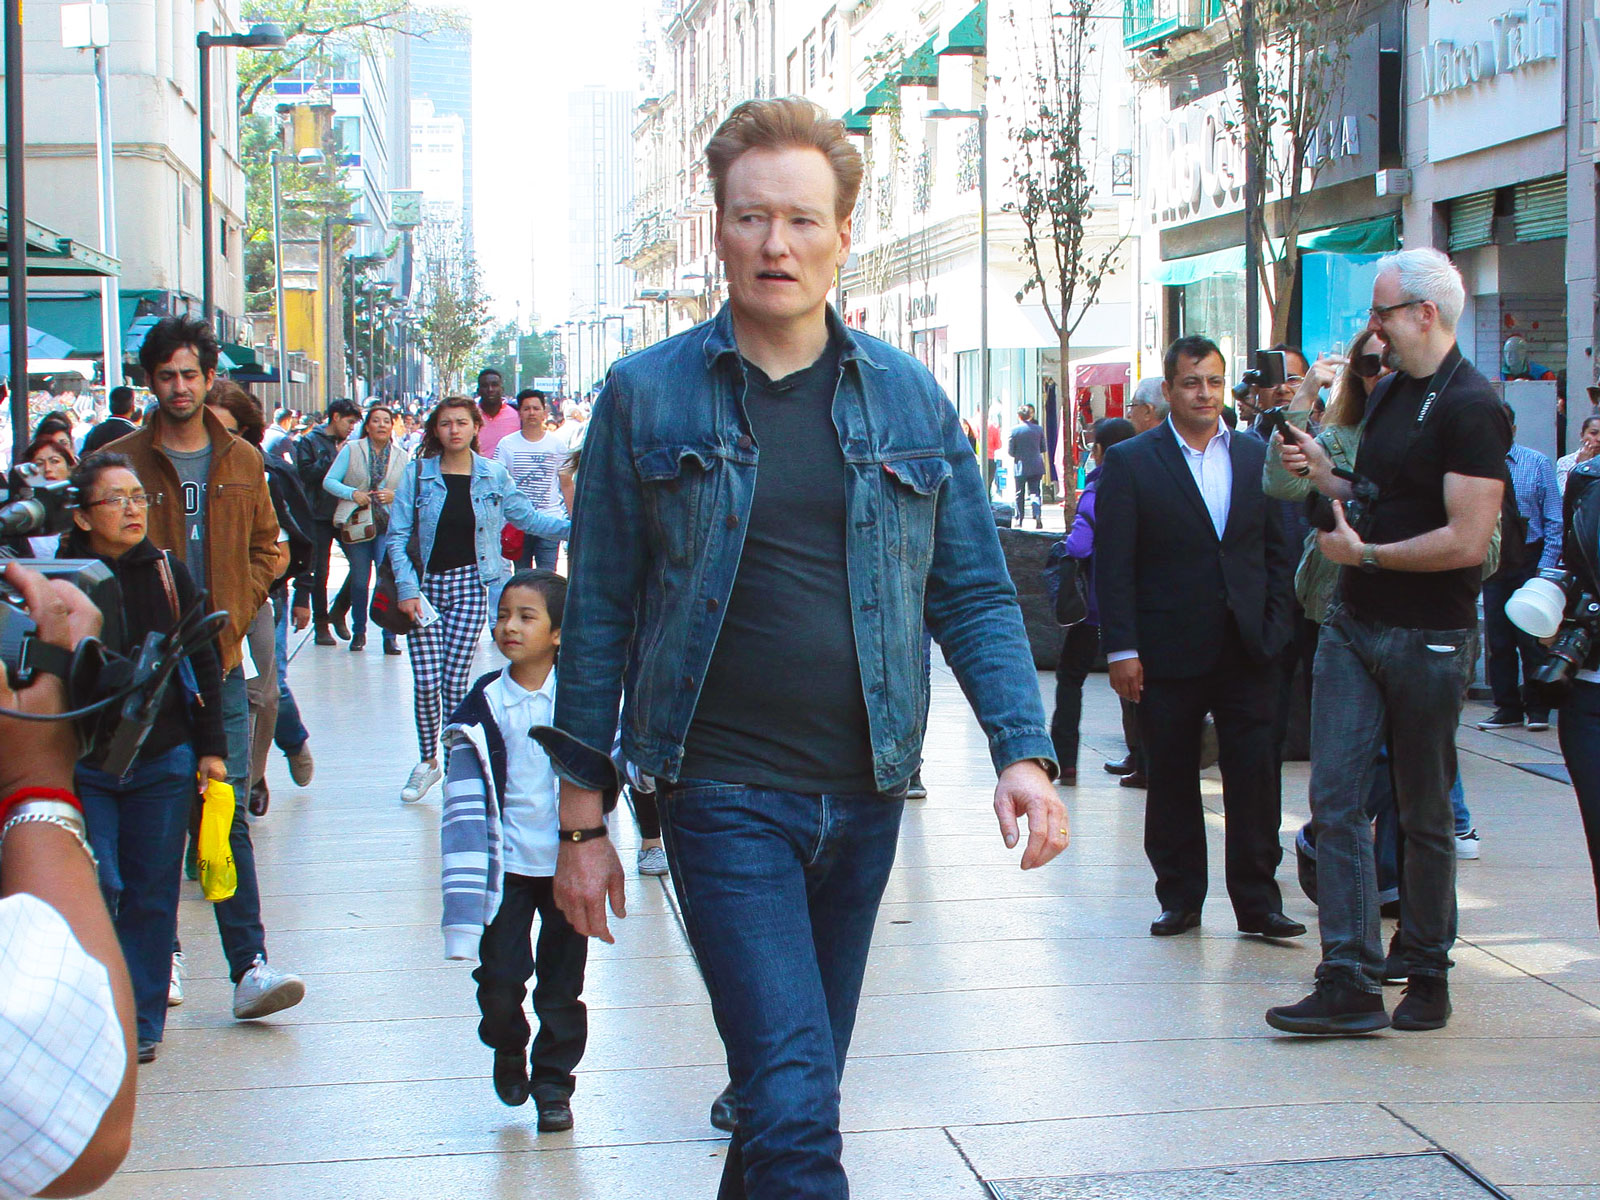 conan-obrien-italy-FT-BLOG0418.jpg